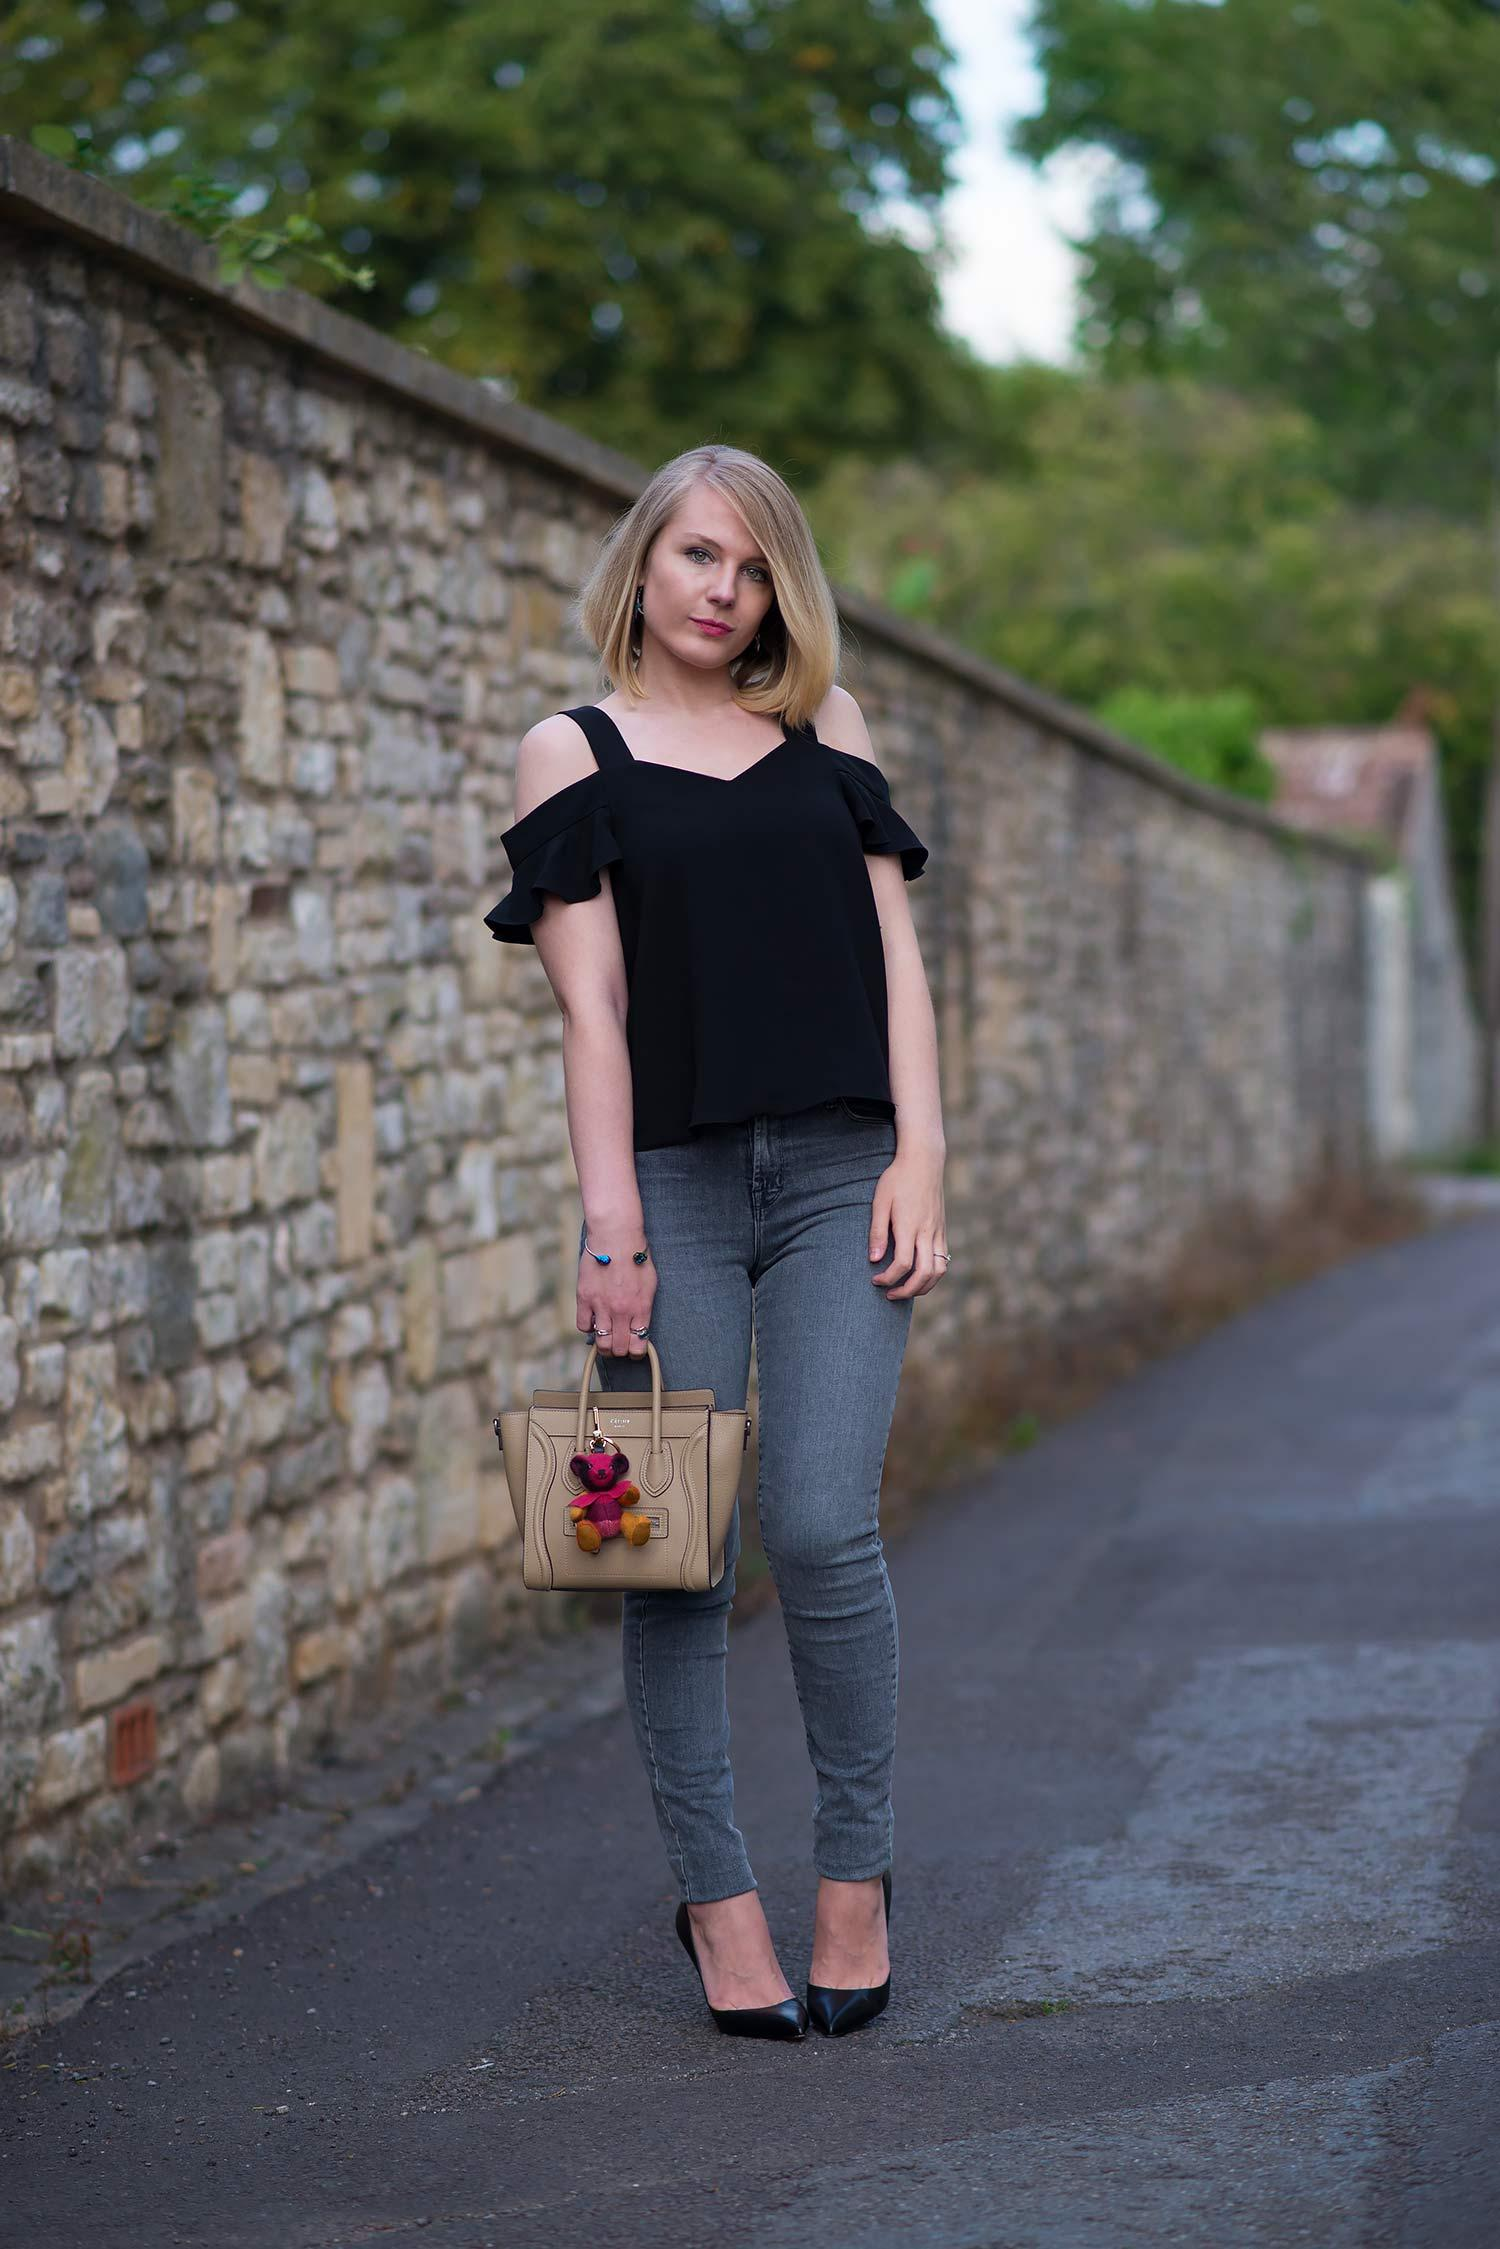 lorna-burford-tight-jeans-outfit